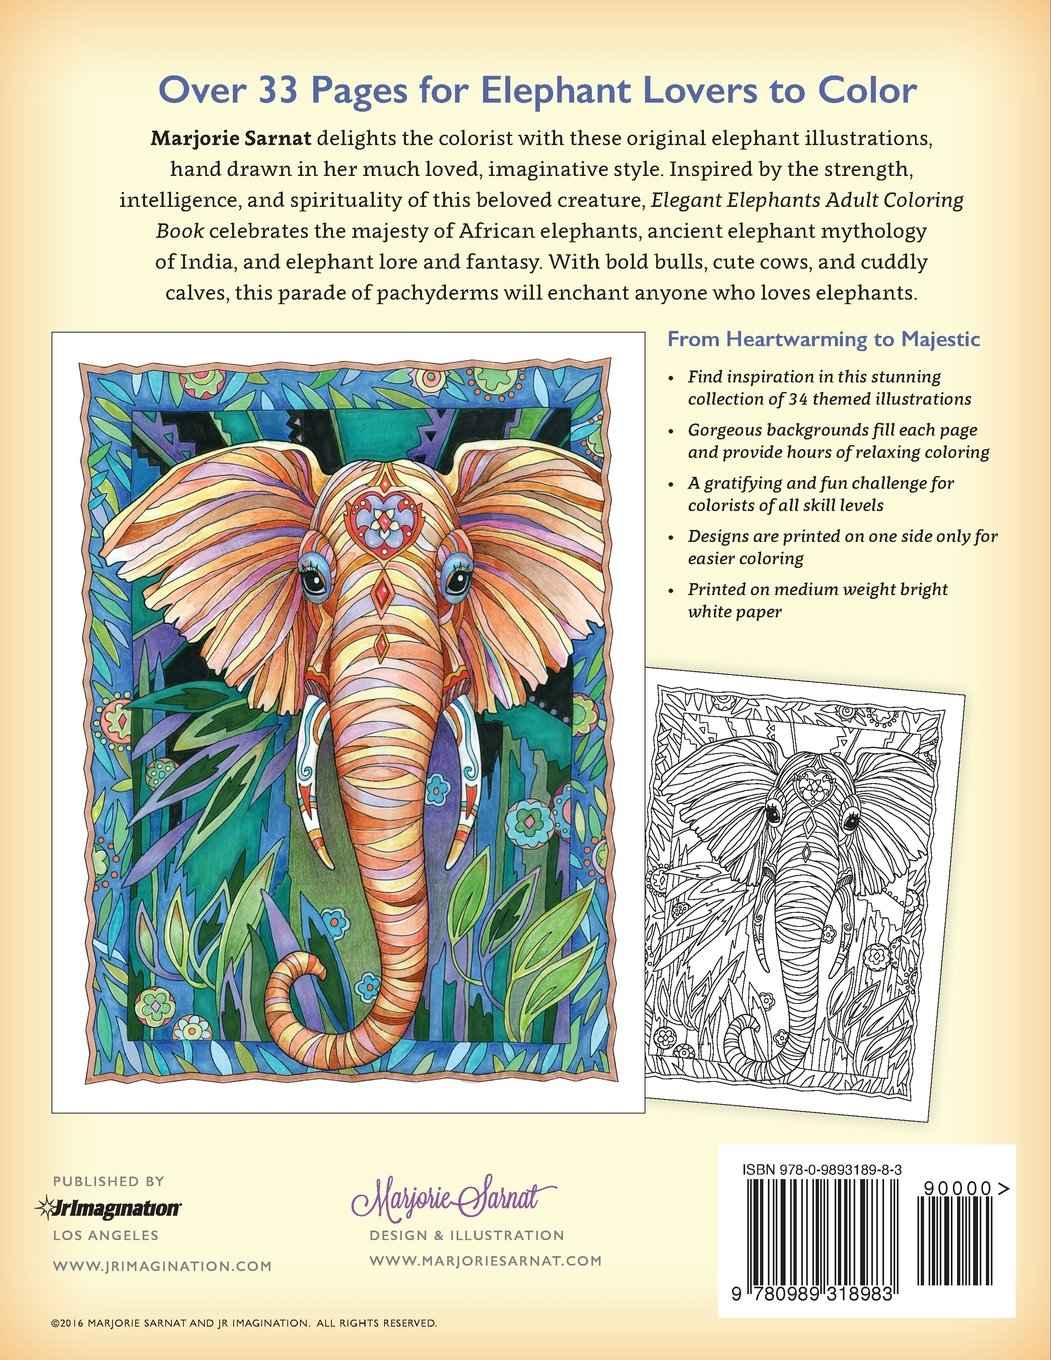 The Art Of Marjorie Sarnat Elegant Elephants Adult 9475010